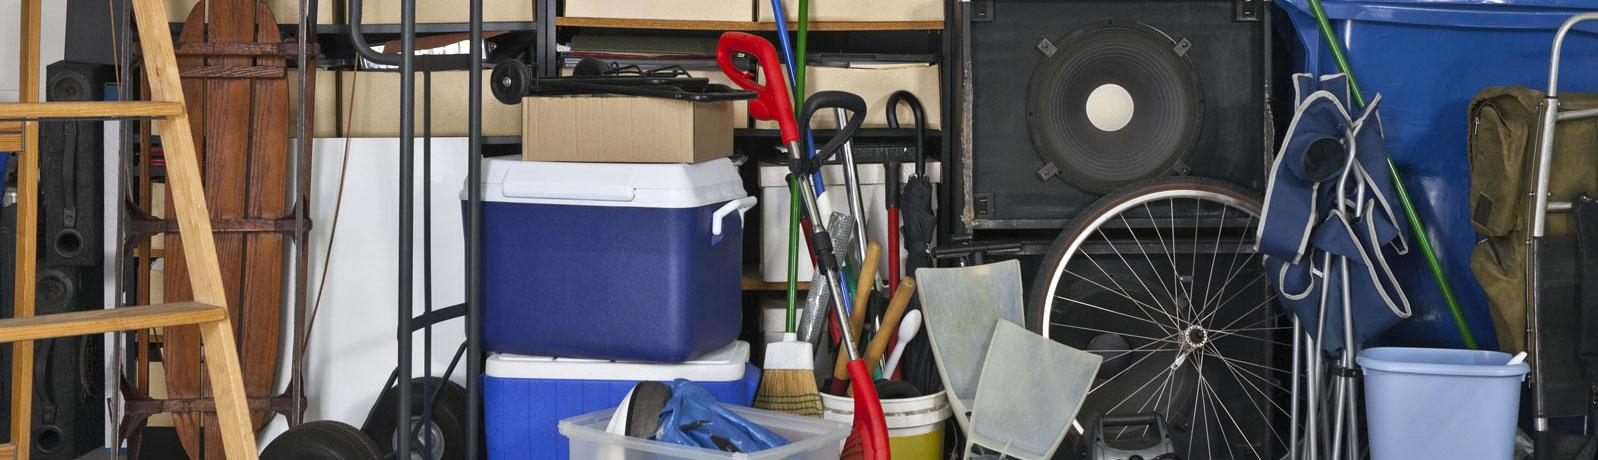 Go House Clearance - House & Office Clearance in London